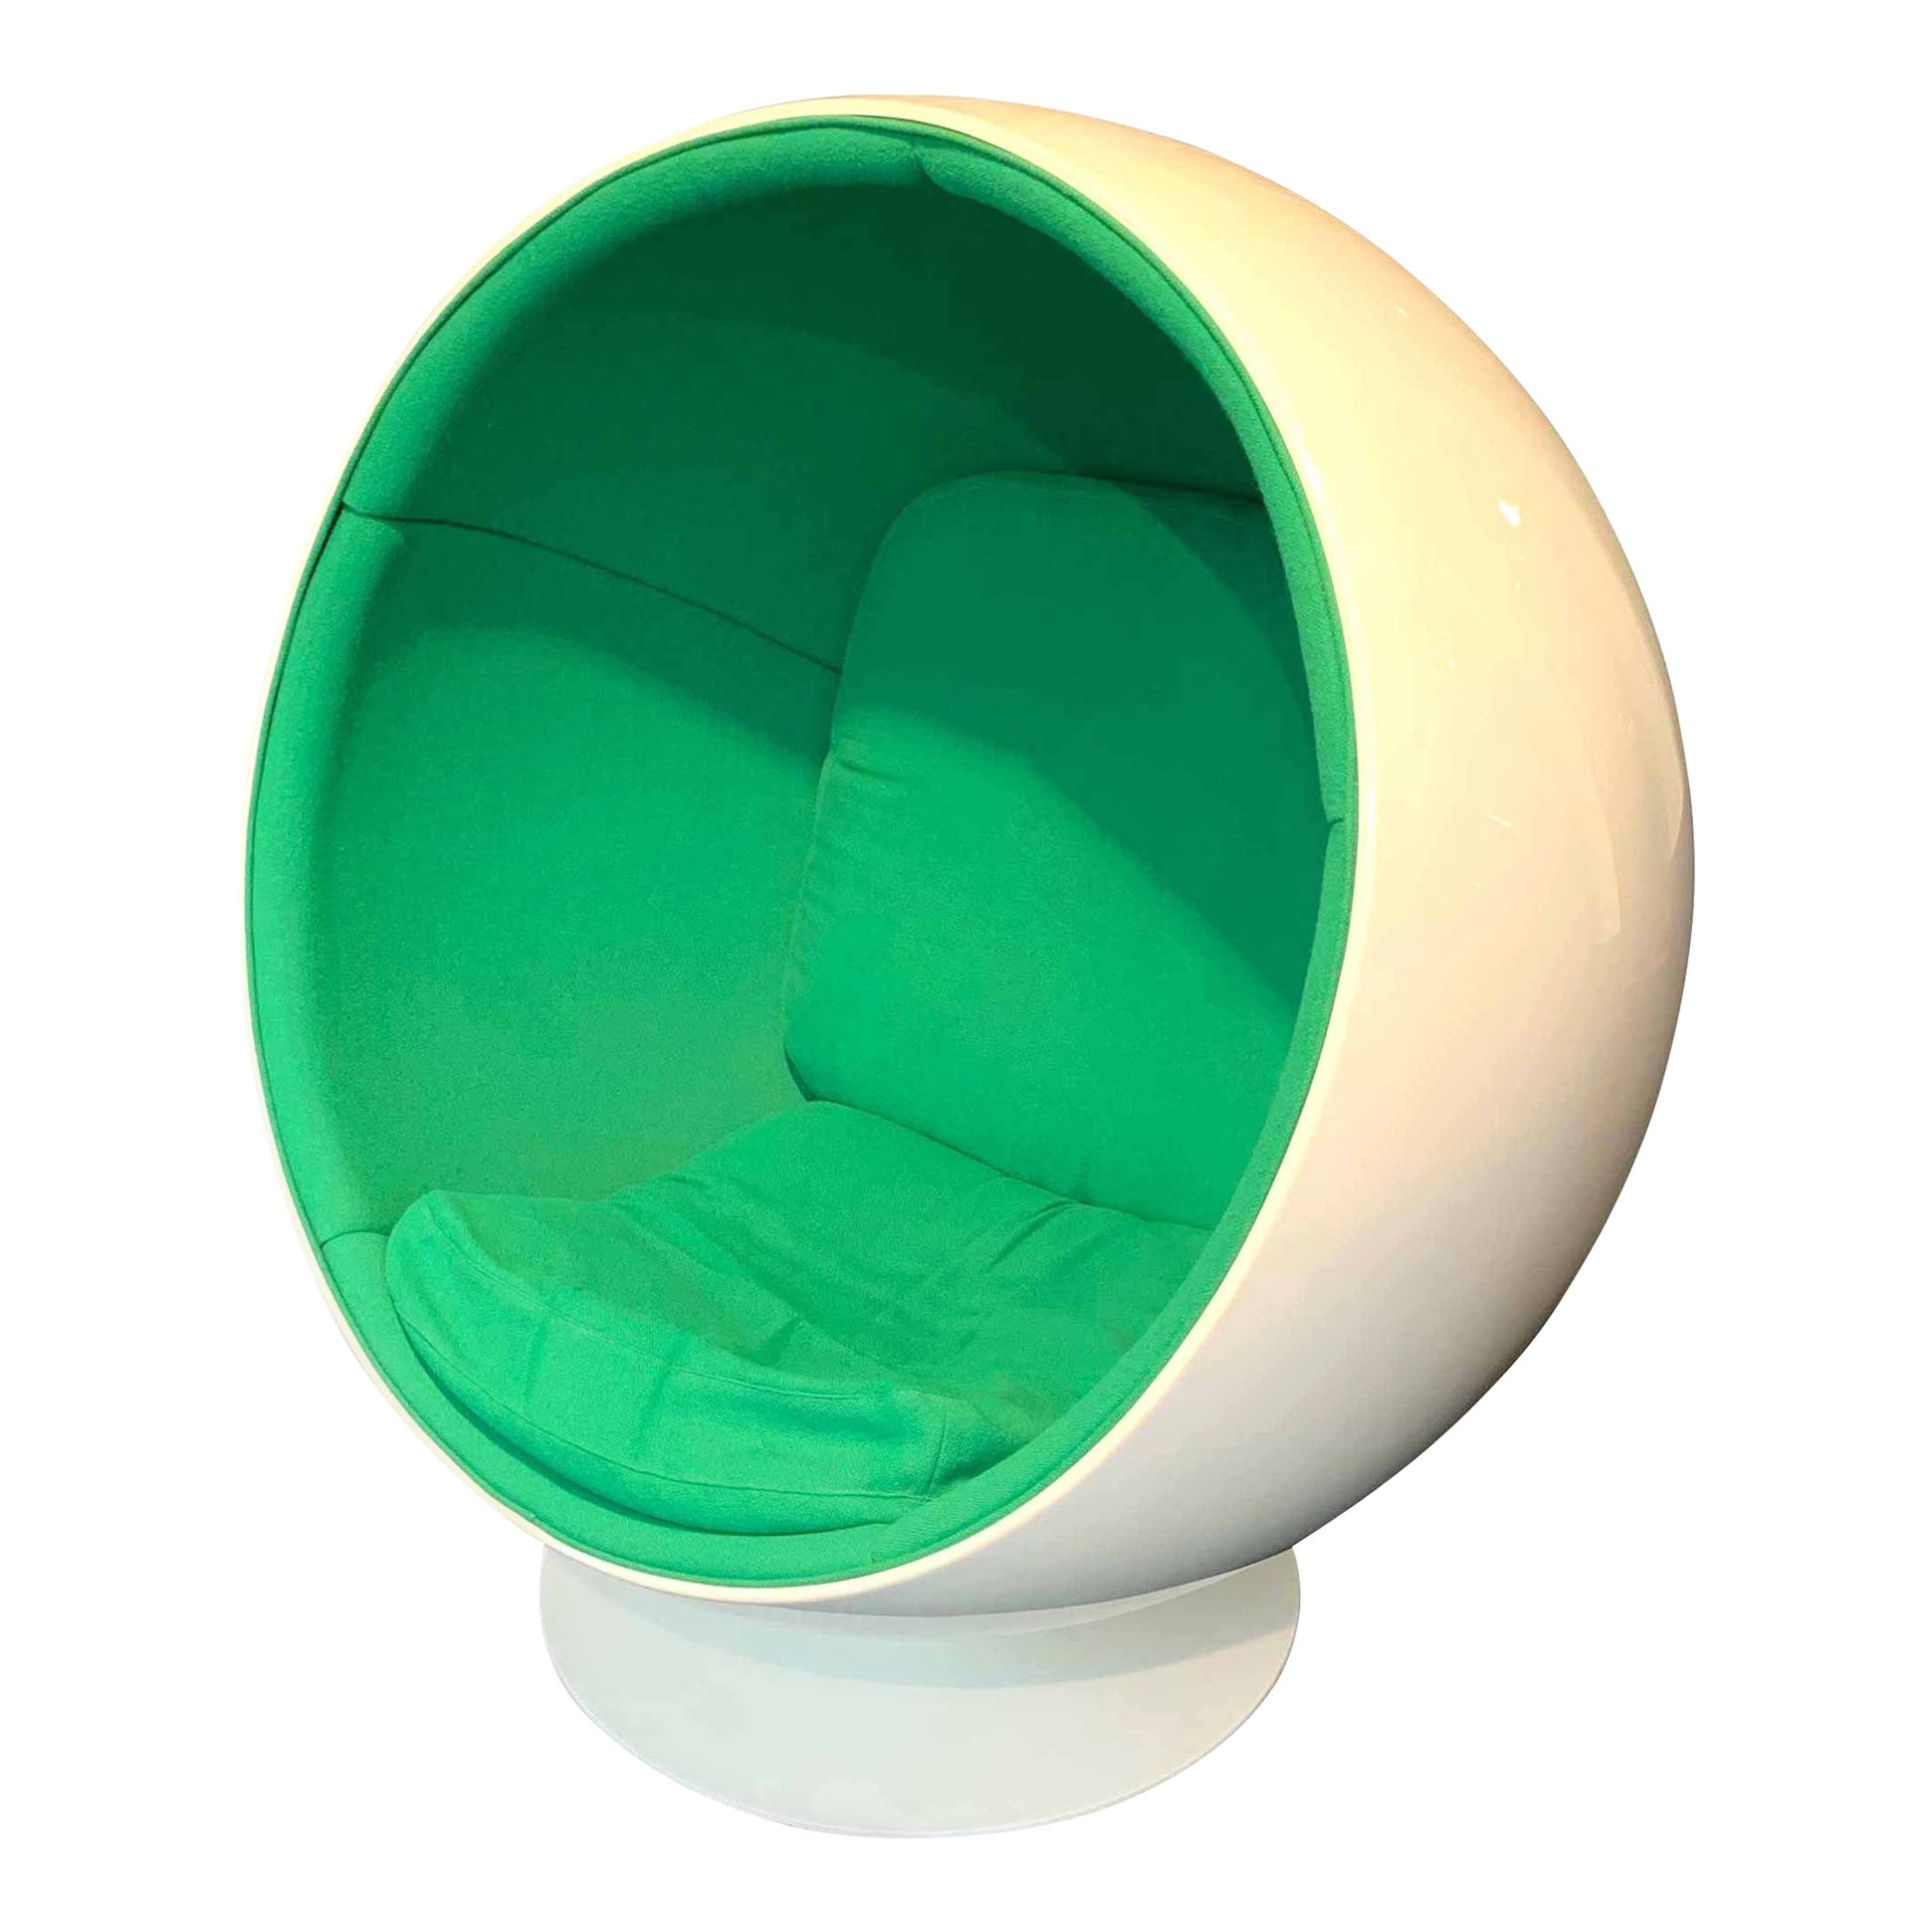 Space Age Ball Chair by Adelta, Eero Aarino, Green and White, Finland